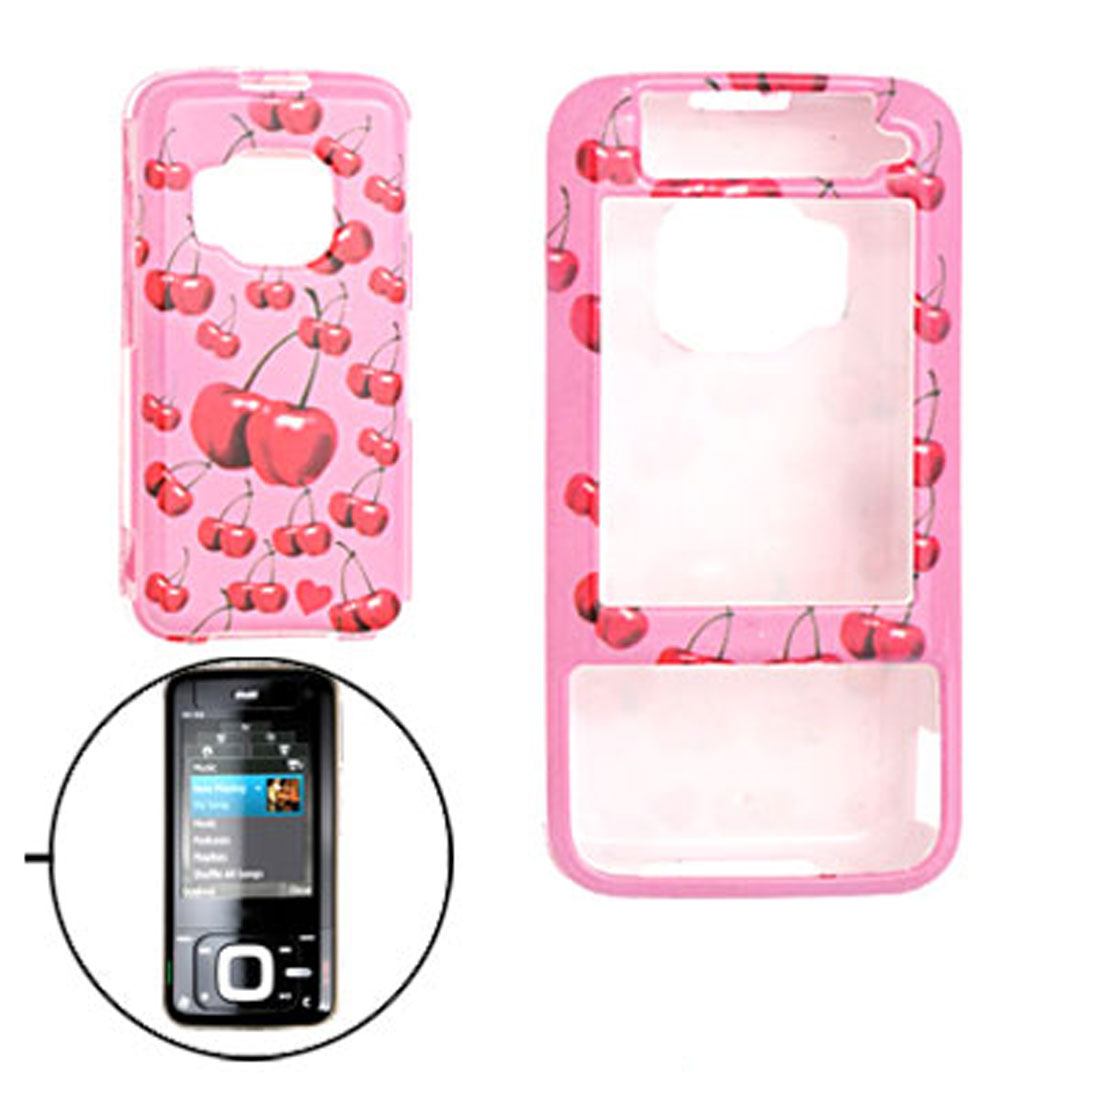 Pink Cherry Pattern Plastic Case Cover for Nokia N81